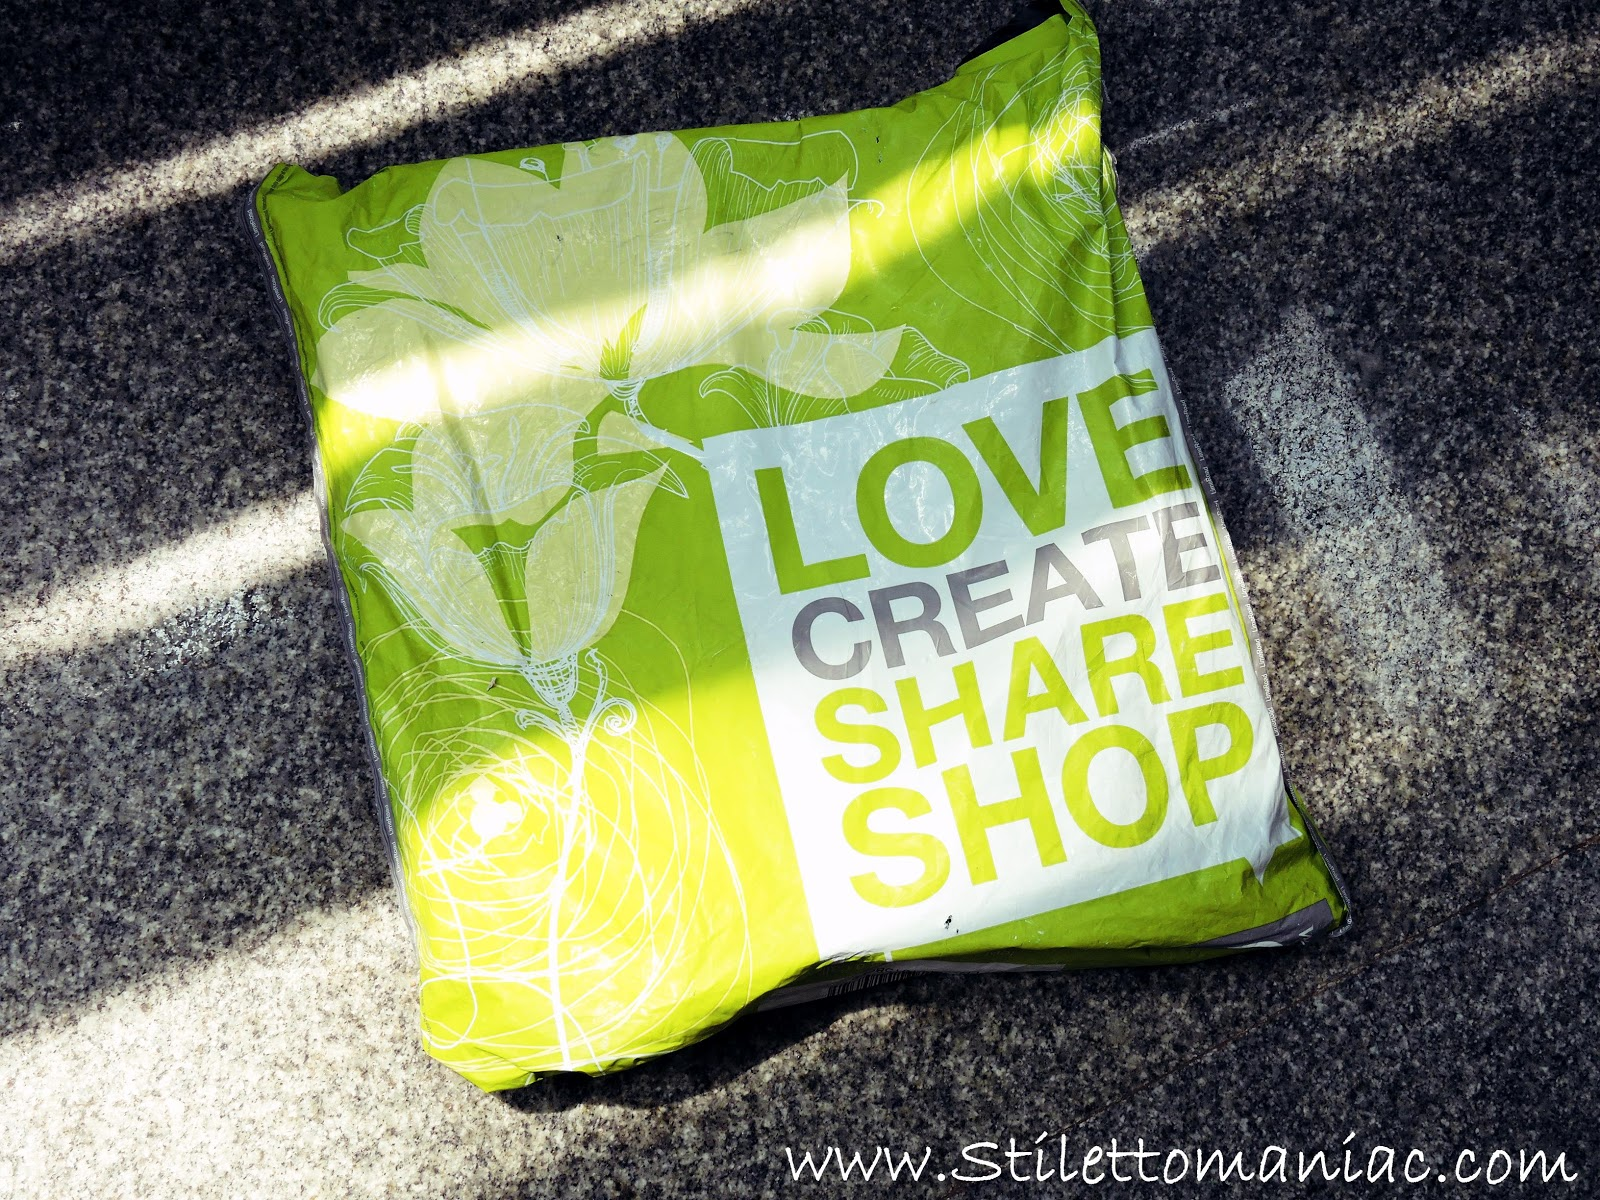 How to create scrapbook on limeroad - However It Has Been A While Since I Shopped From Lime Road A Few Days Back I Got A Chance To Shop Again And That Was When I Chose This Gorgeous Lime Bag